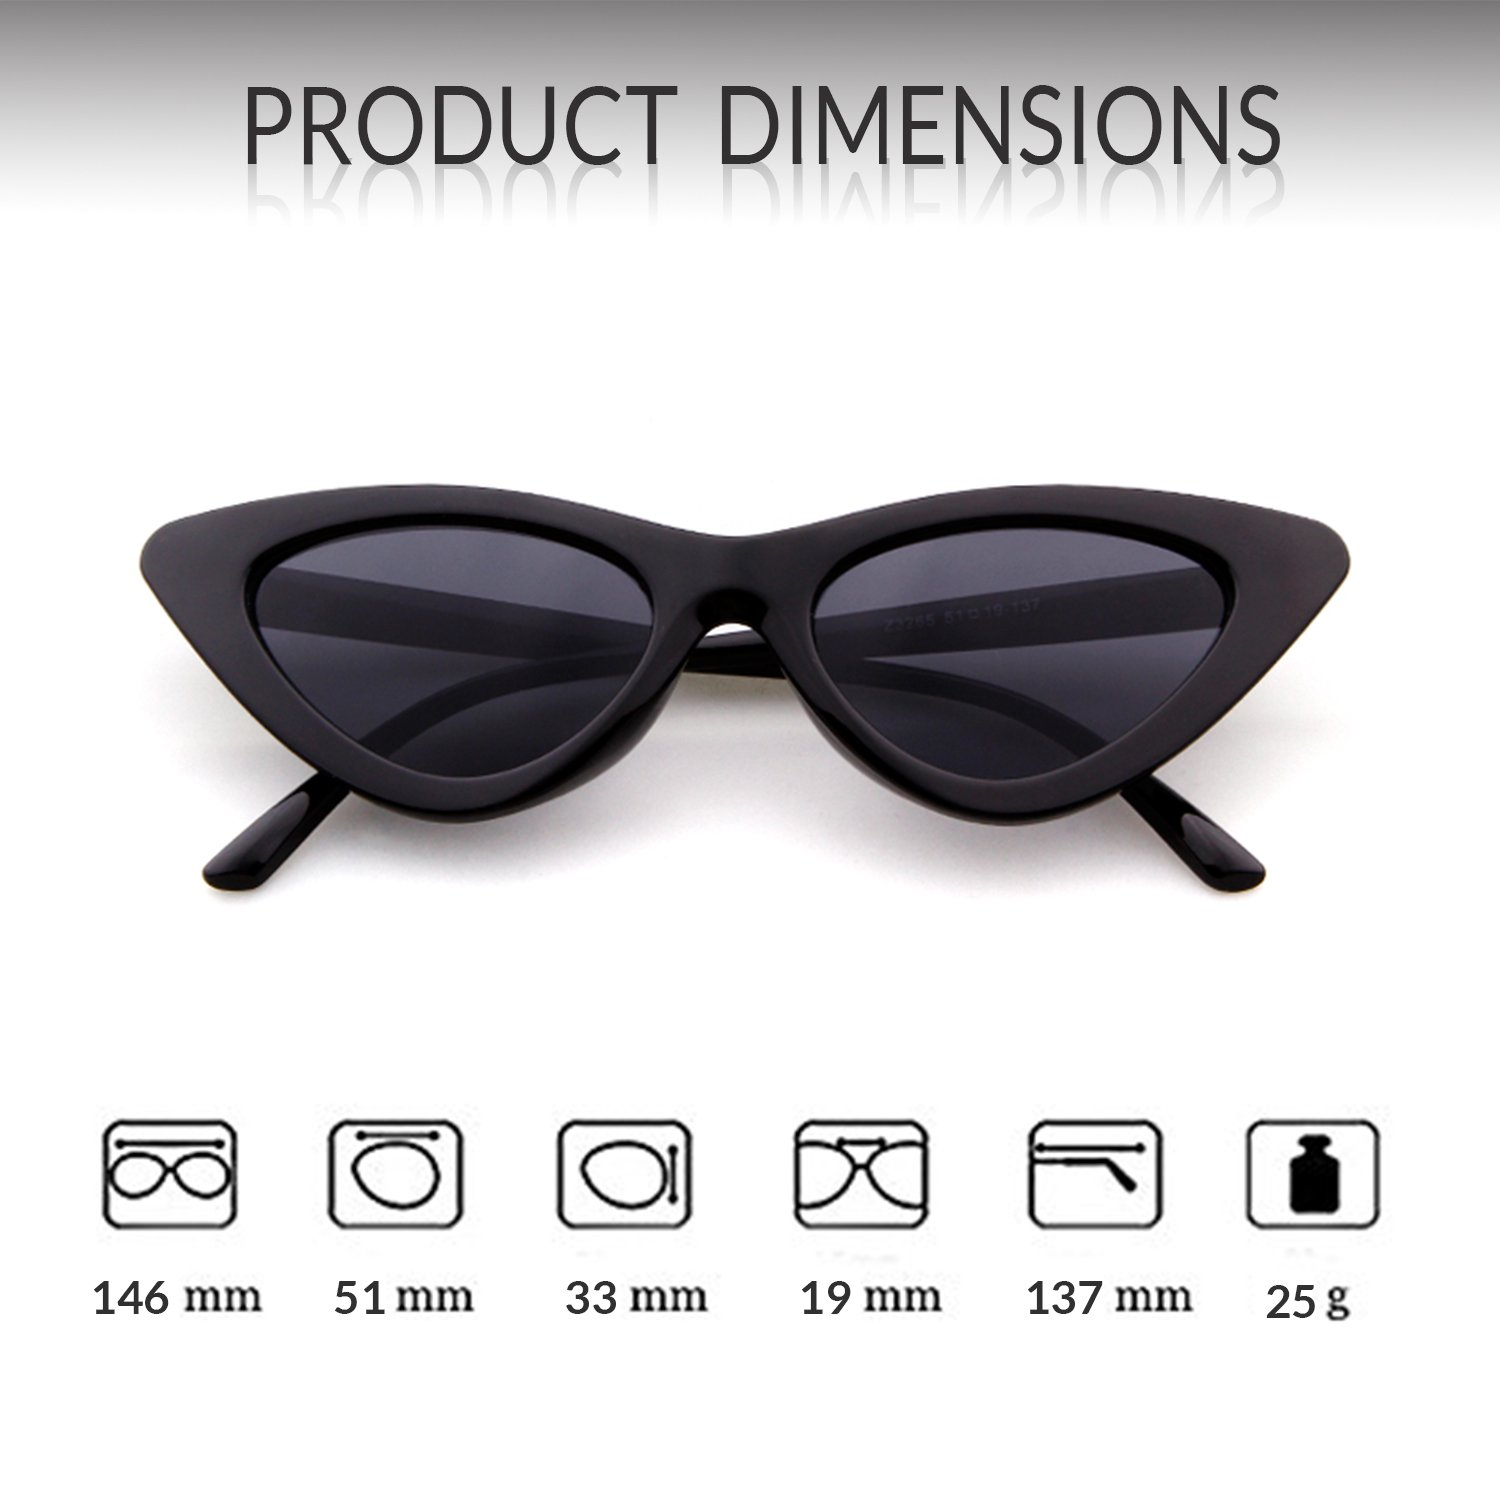 f669919e62a3 Retro Vintage Cat Eye Sunglasses for Women Clout Goggles Plastic Frame  Glasses - 43237-2 < Sunglasses < Clothing, Shoes & Jewelry - tibs